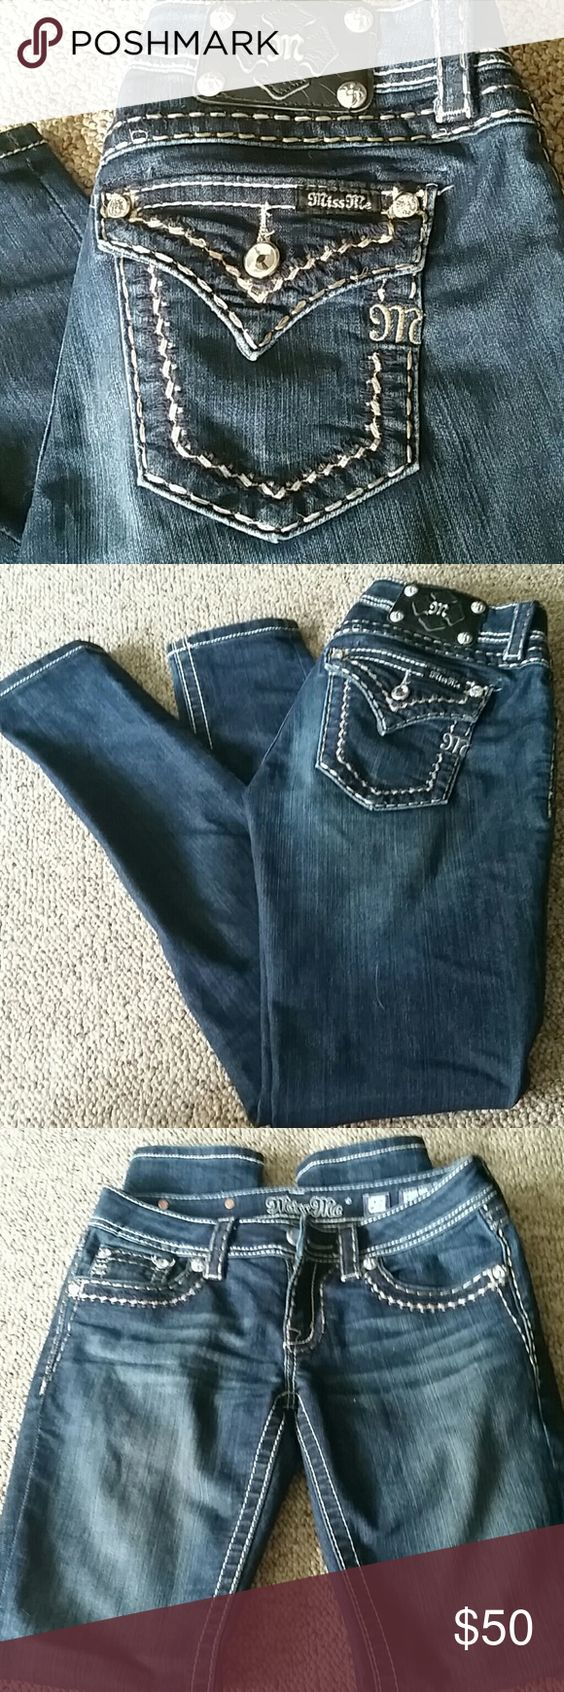 """Miss Me Jeans Excellent used condition.  No holes. No stains. No rips.  Hems are in perfect condition.  Style is """"skinny"""". Stone is missing off one pocket.    73% cotton / 25 % polyester / 2% elastic  Waist and body of jeans are stretchy  Waist 15 inches Inseam 31 inches  Width of hem 5 1/2 inches   ⚠Please make offers thru the OFFER TAB ONLY. I DO NOT negotiate on the listing.  ⚠  ❌No trades  ❌No other sites  ❌No modeling  13 Miss Me Jeans Skinny"""